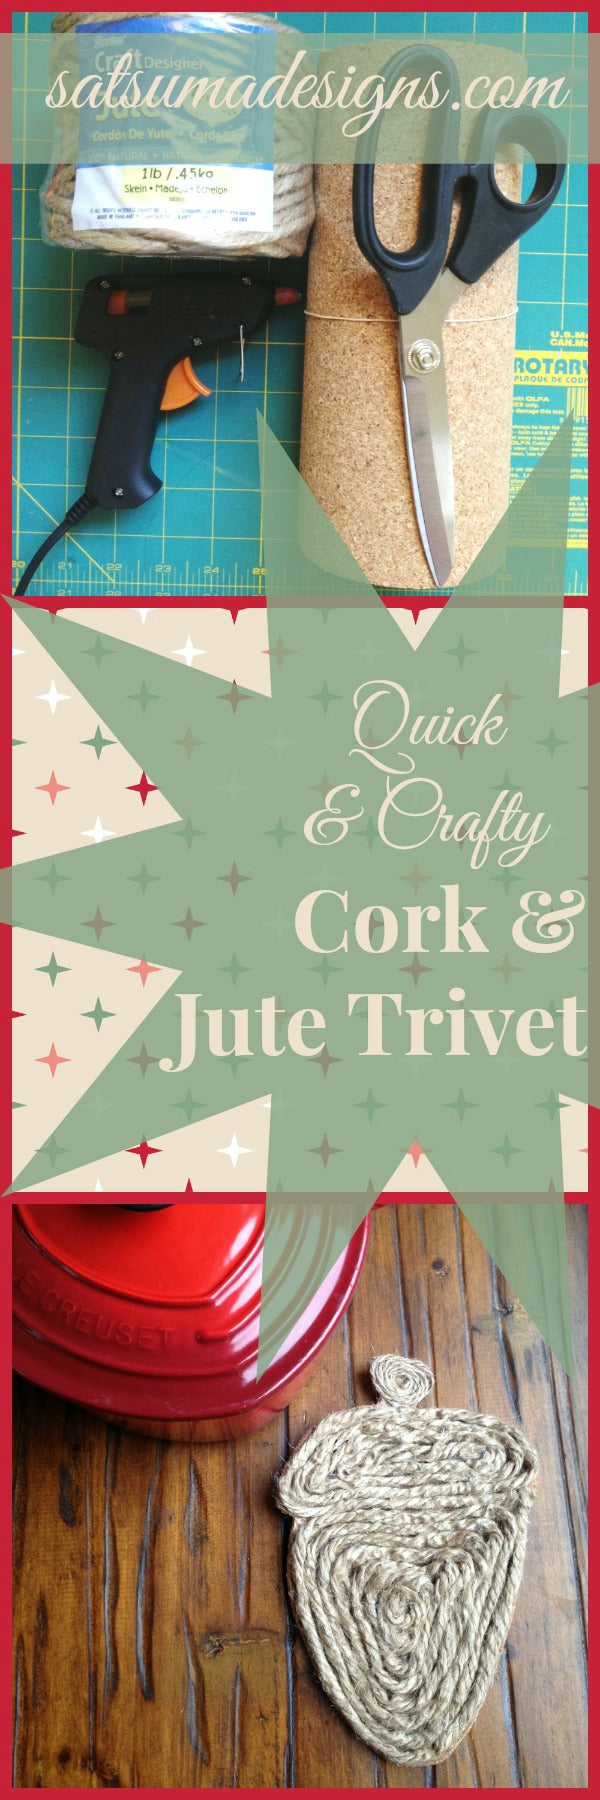 quick and crafty cork and jute trivets for holiday